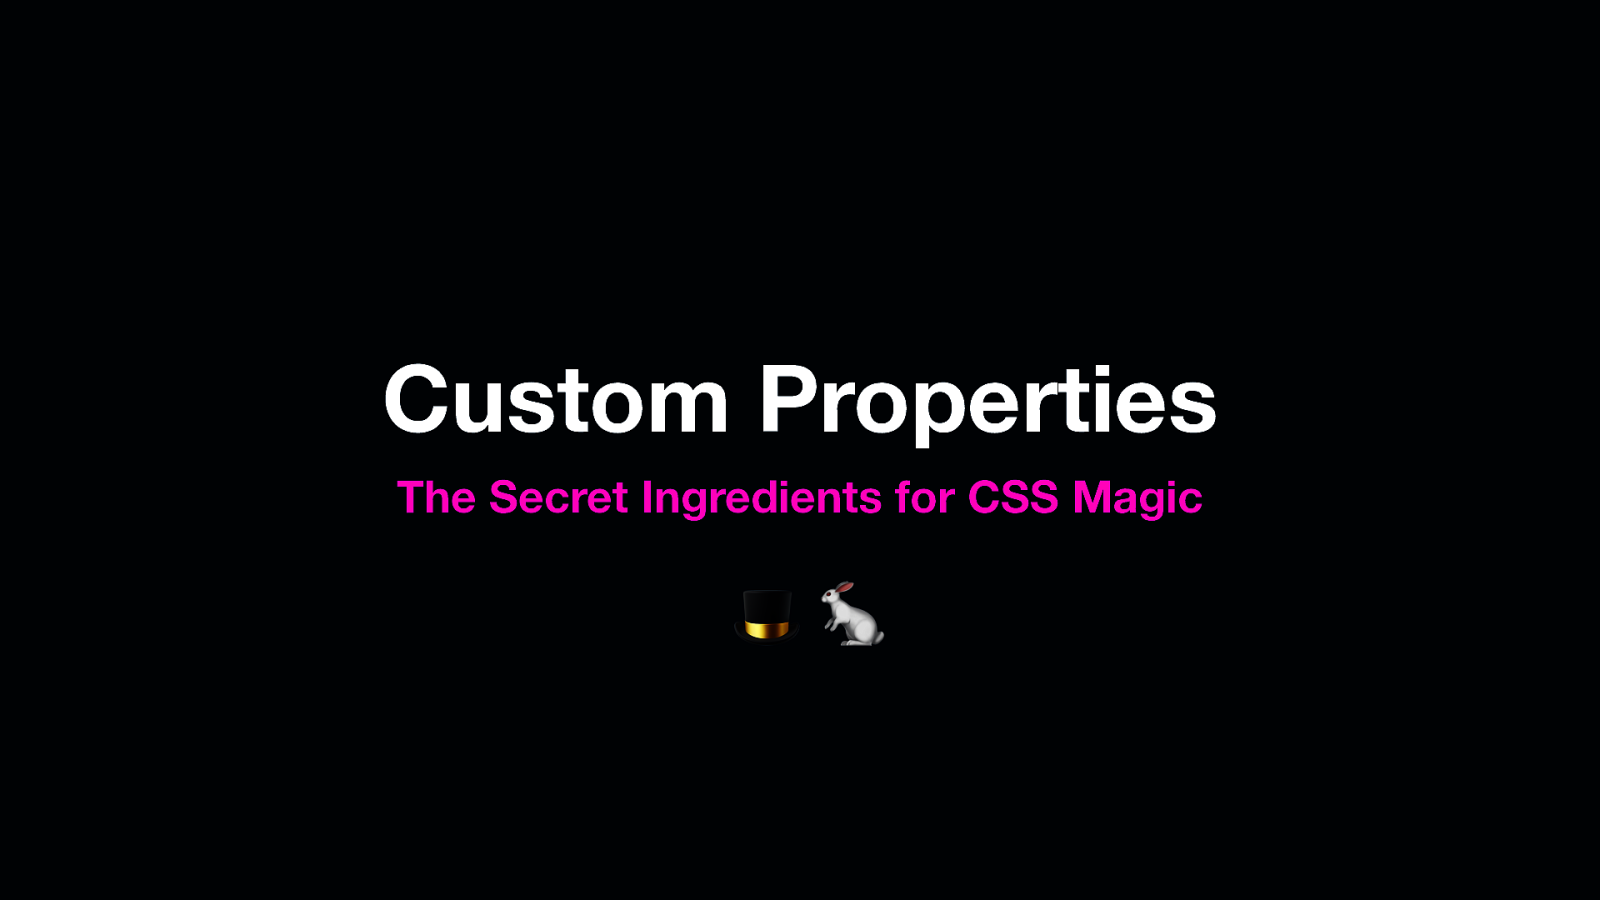 Custom Properties: The Secret Ingredients for CSS Magic